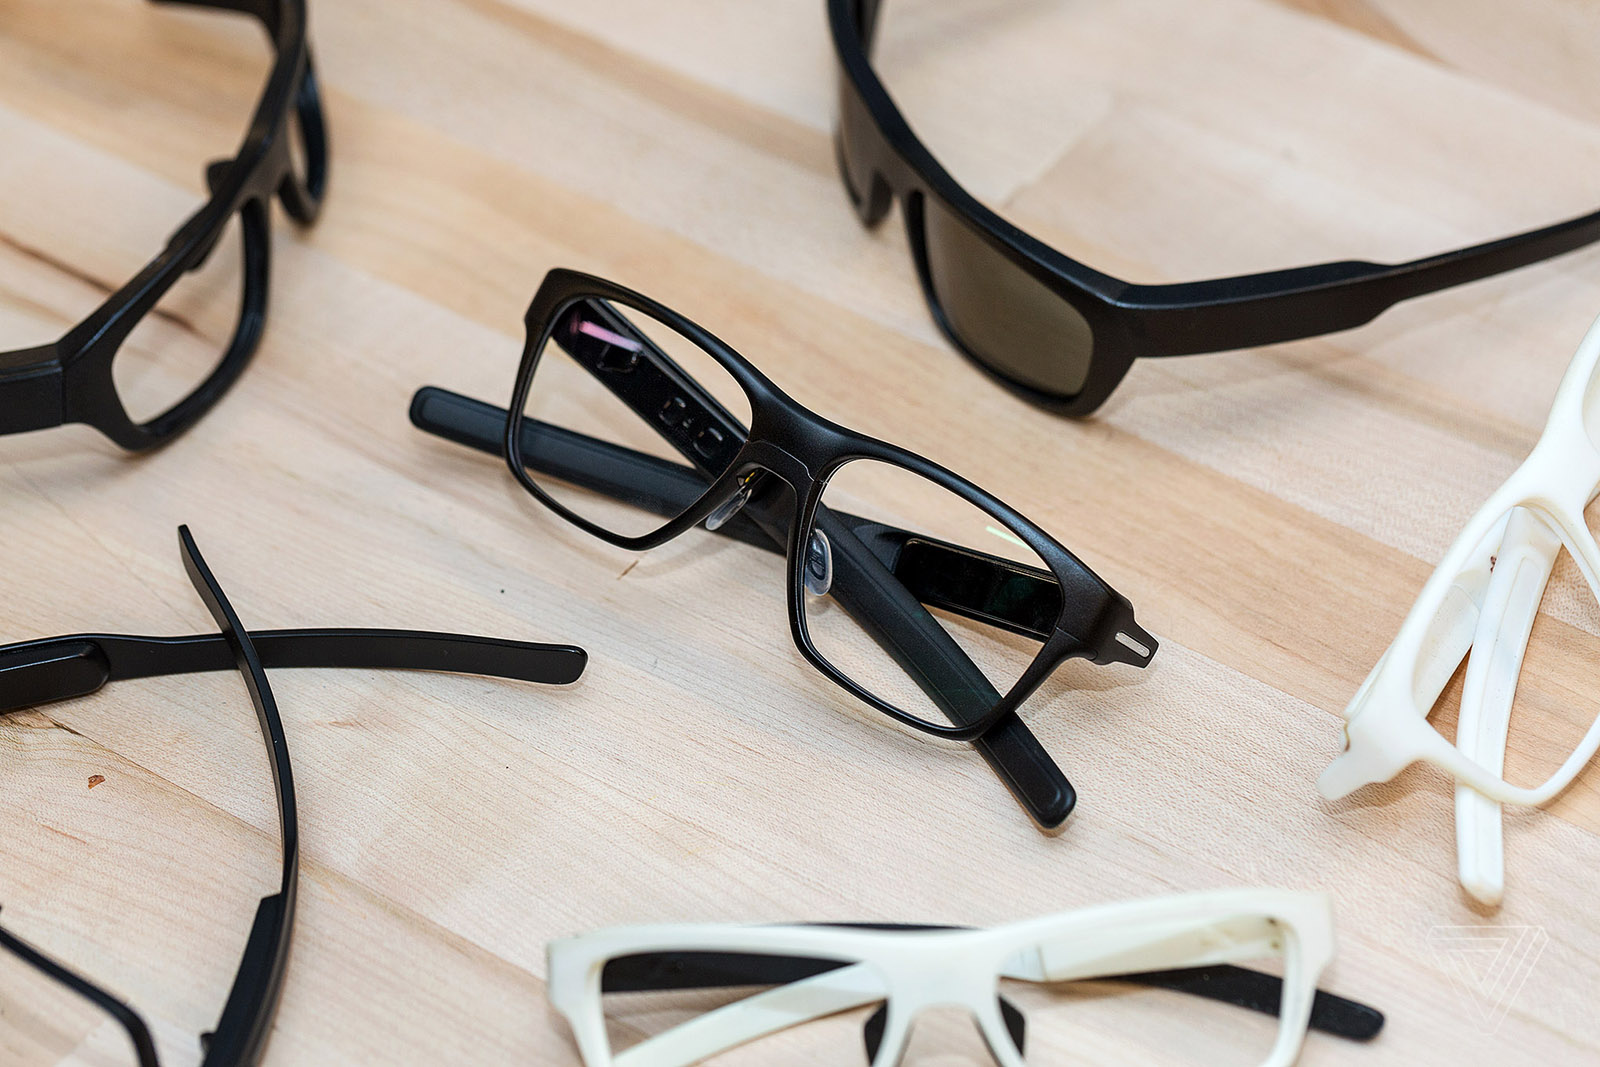 902aed40f85b Intel unveils smart glasses that you might want to wear